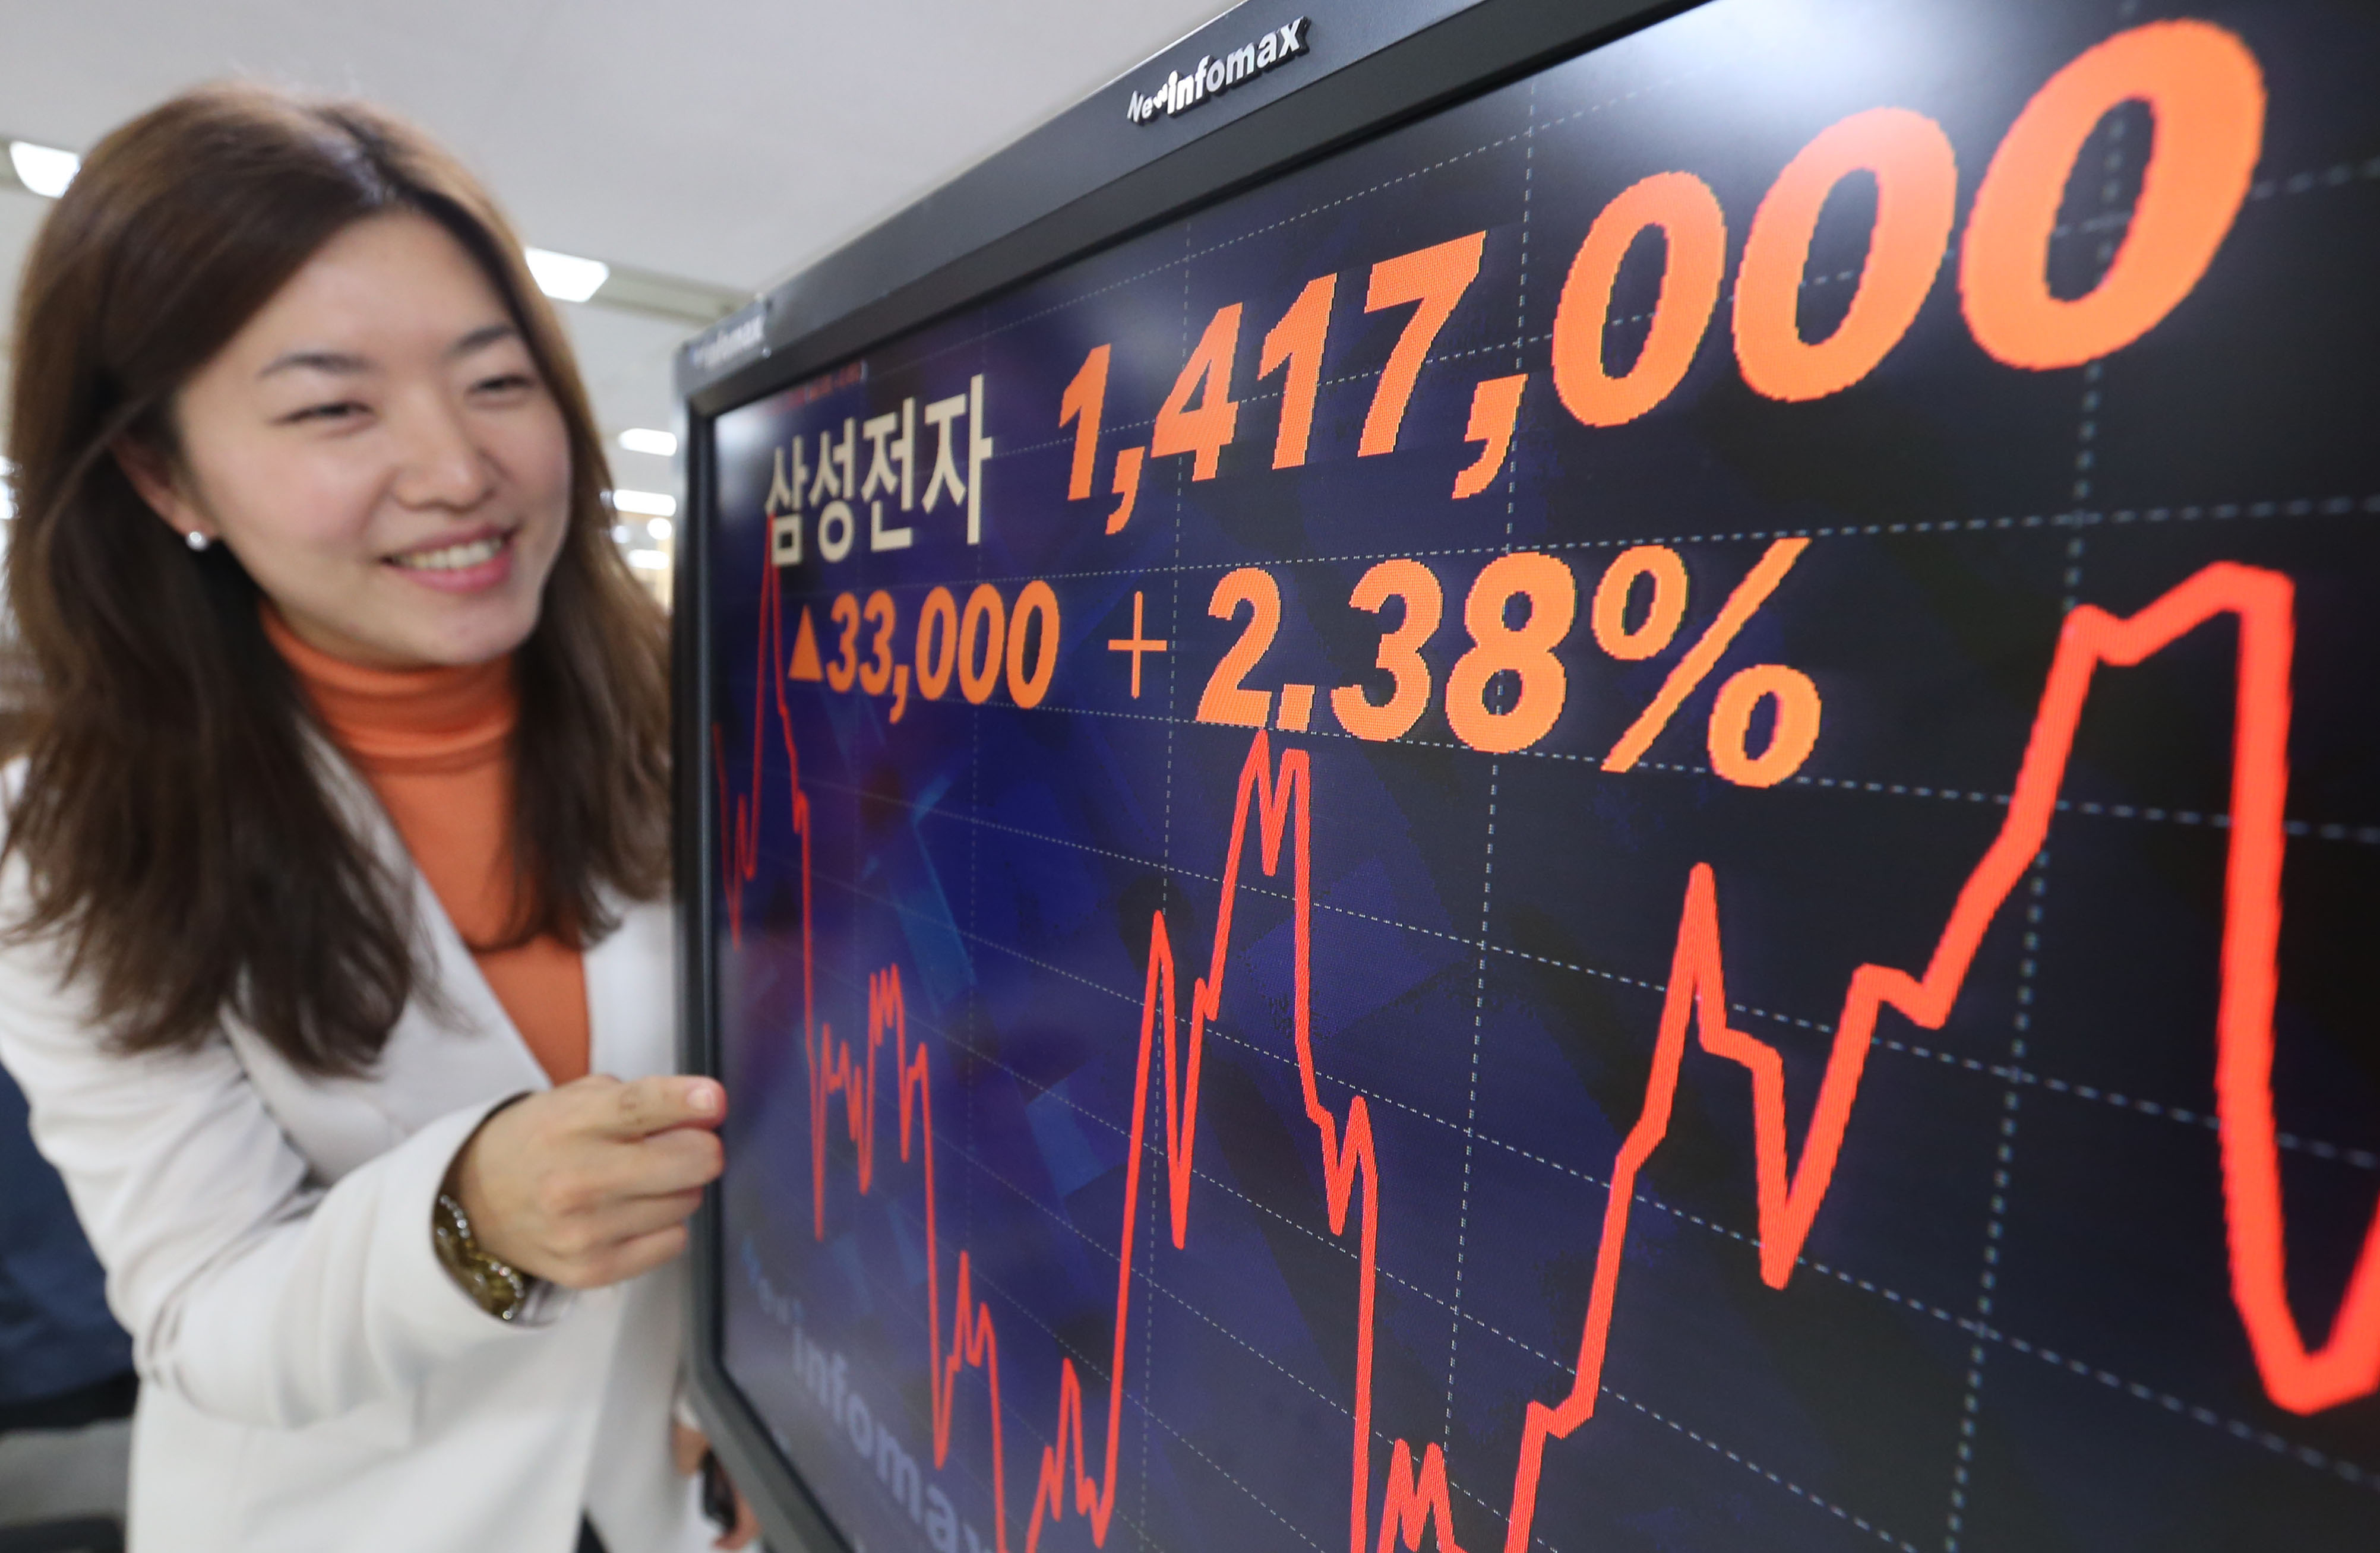 Samsung Electronics' capitalization is 17.88 percent of the entire Korean stock market.